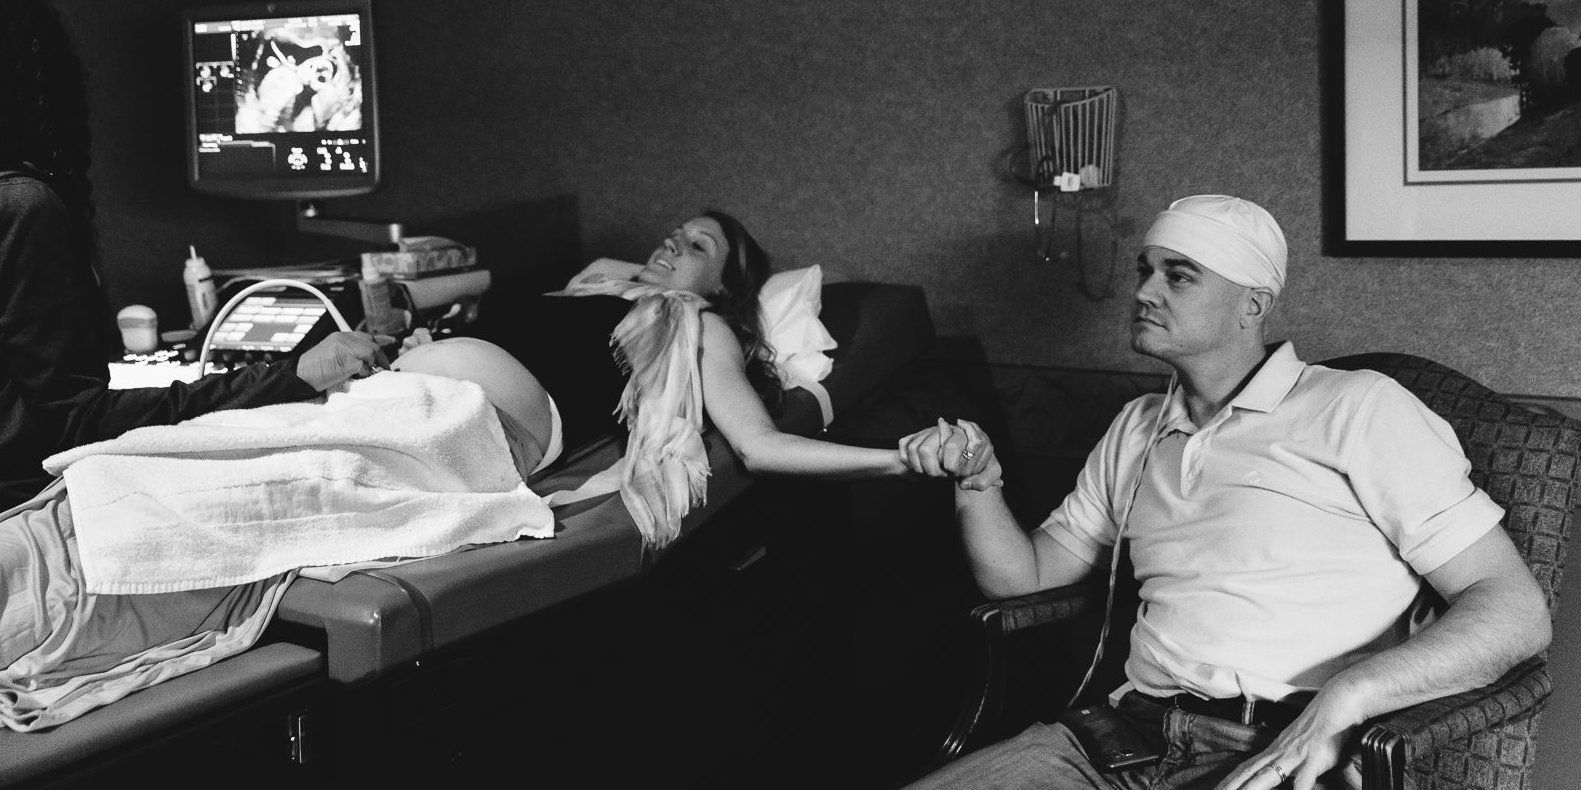 Heartbreaking Photo Documentary Captures True Love in the Face of Cancer